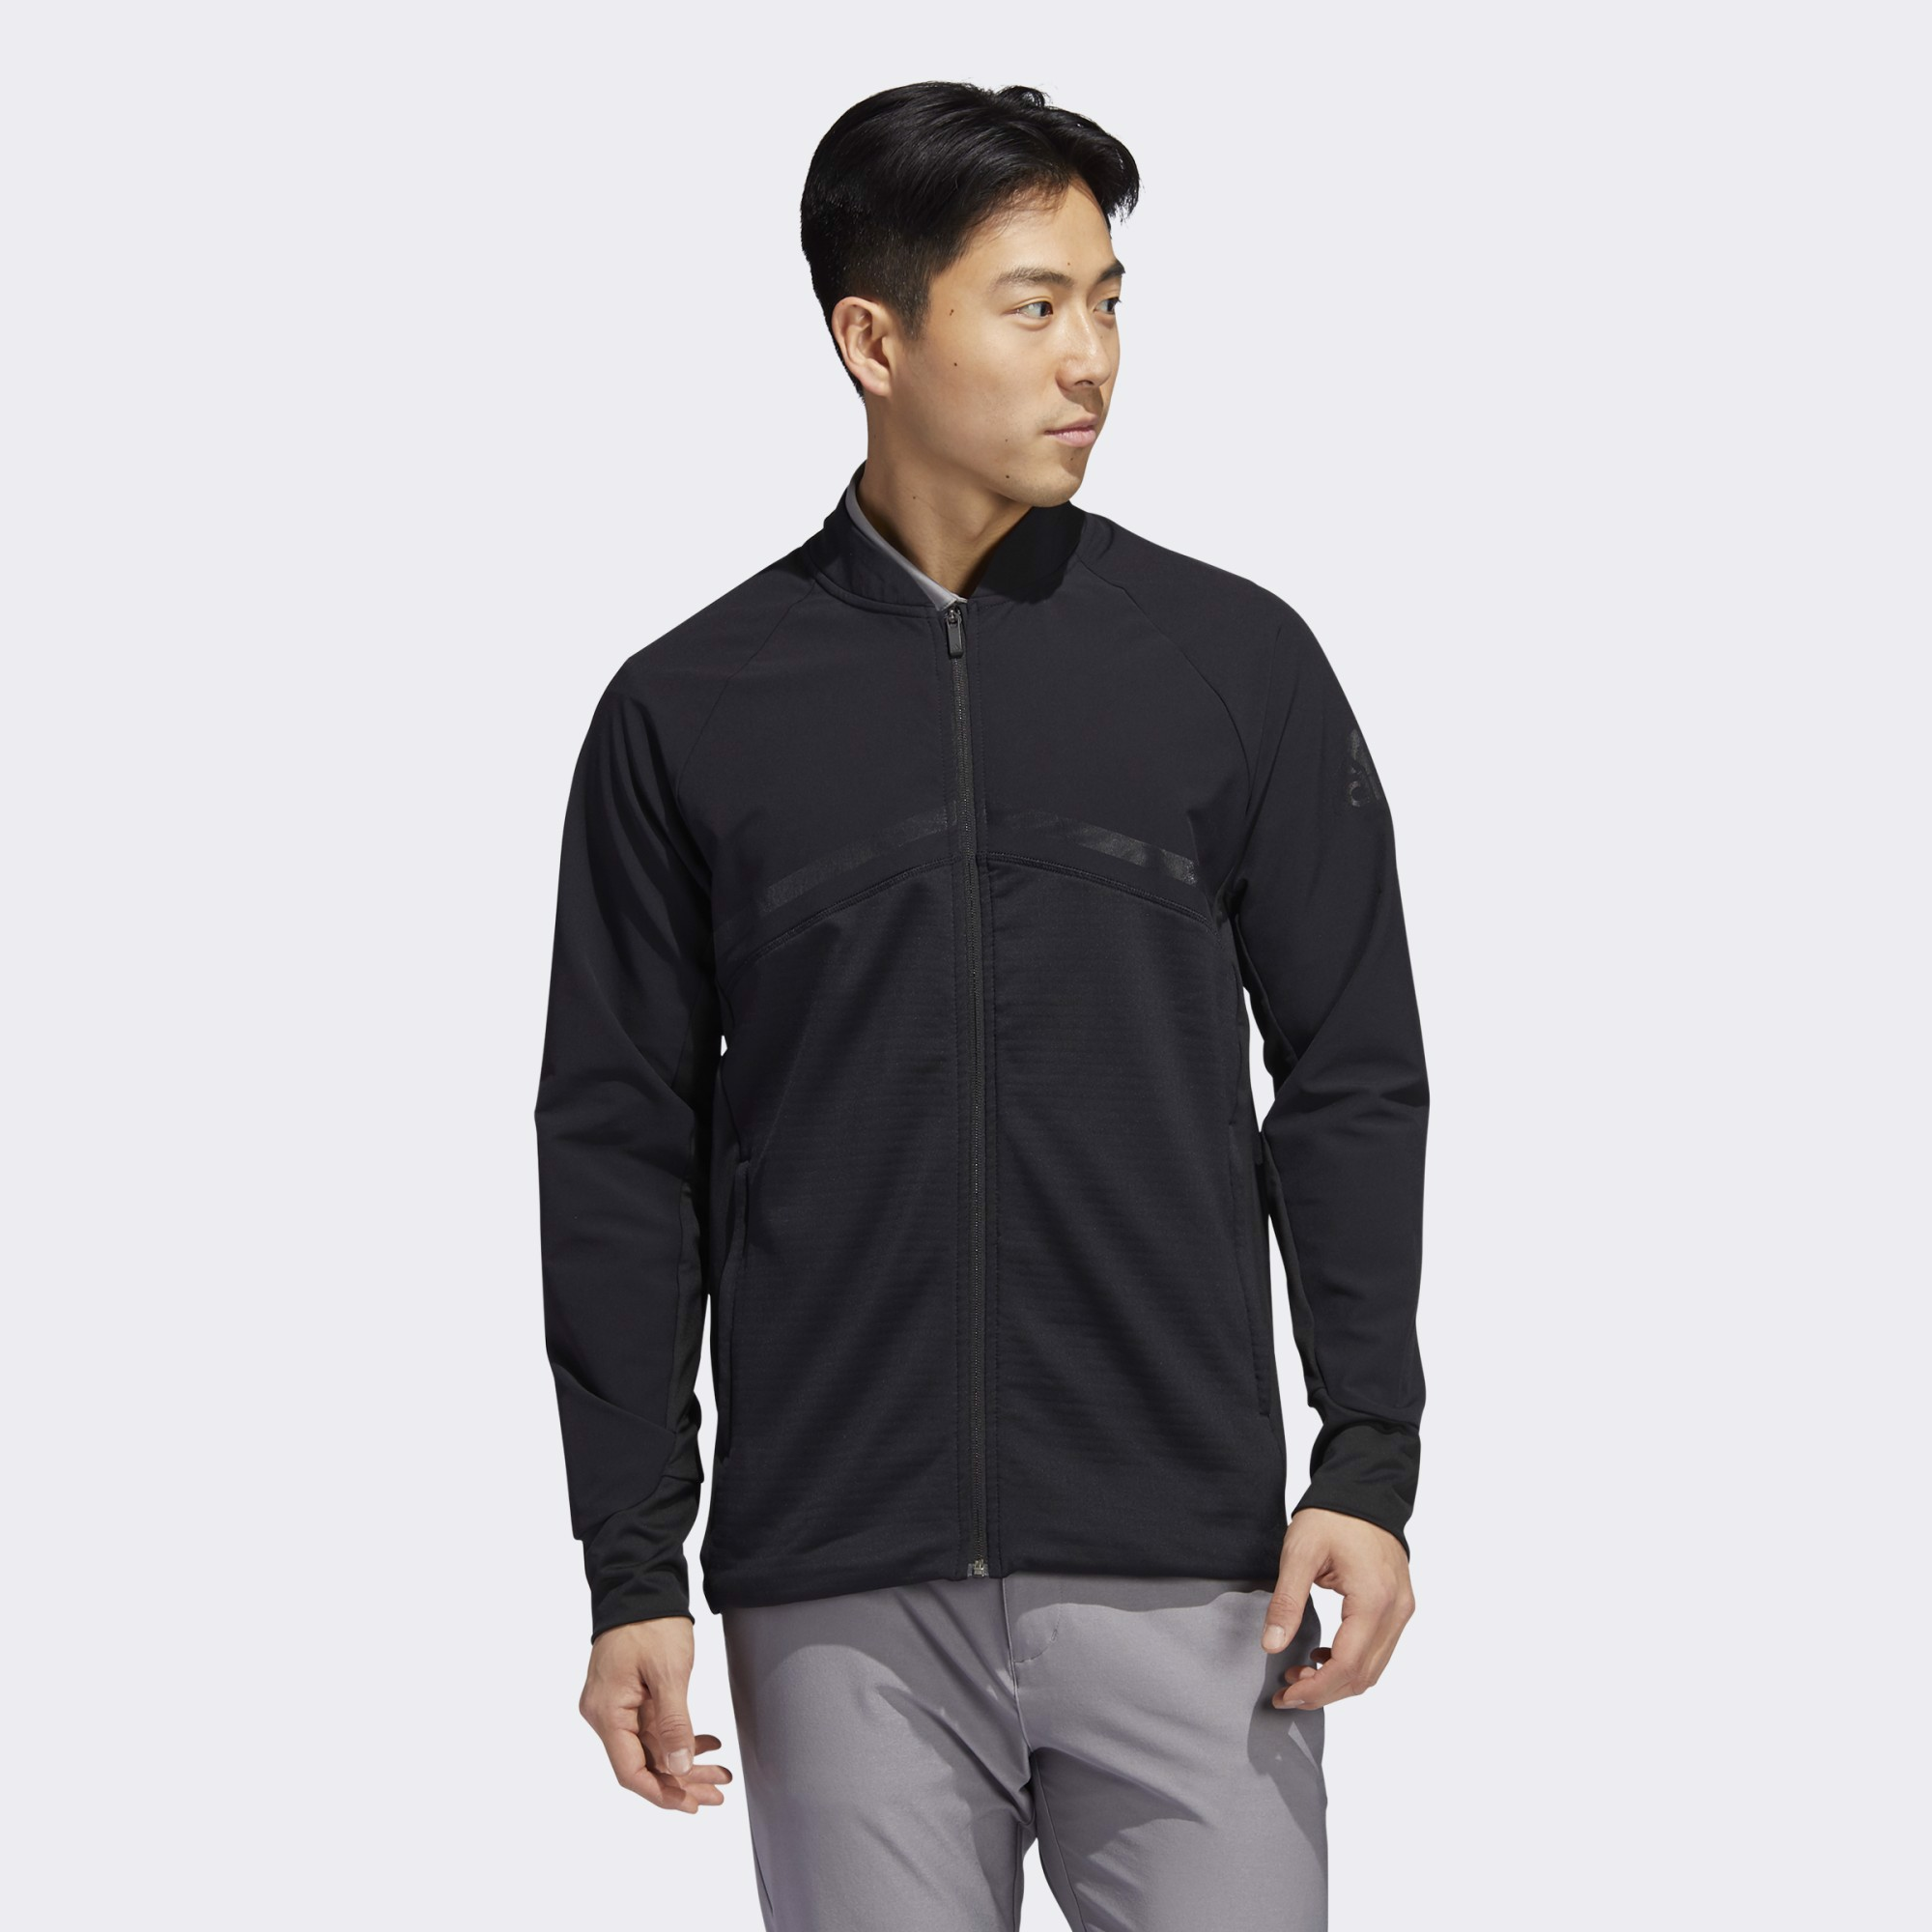 adidas Hybrid Full-Zip Jacket - Black